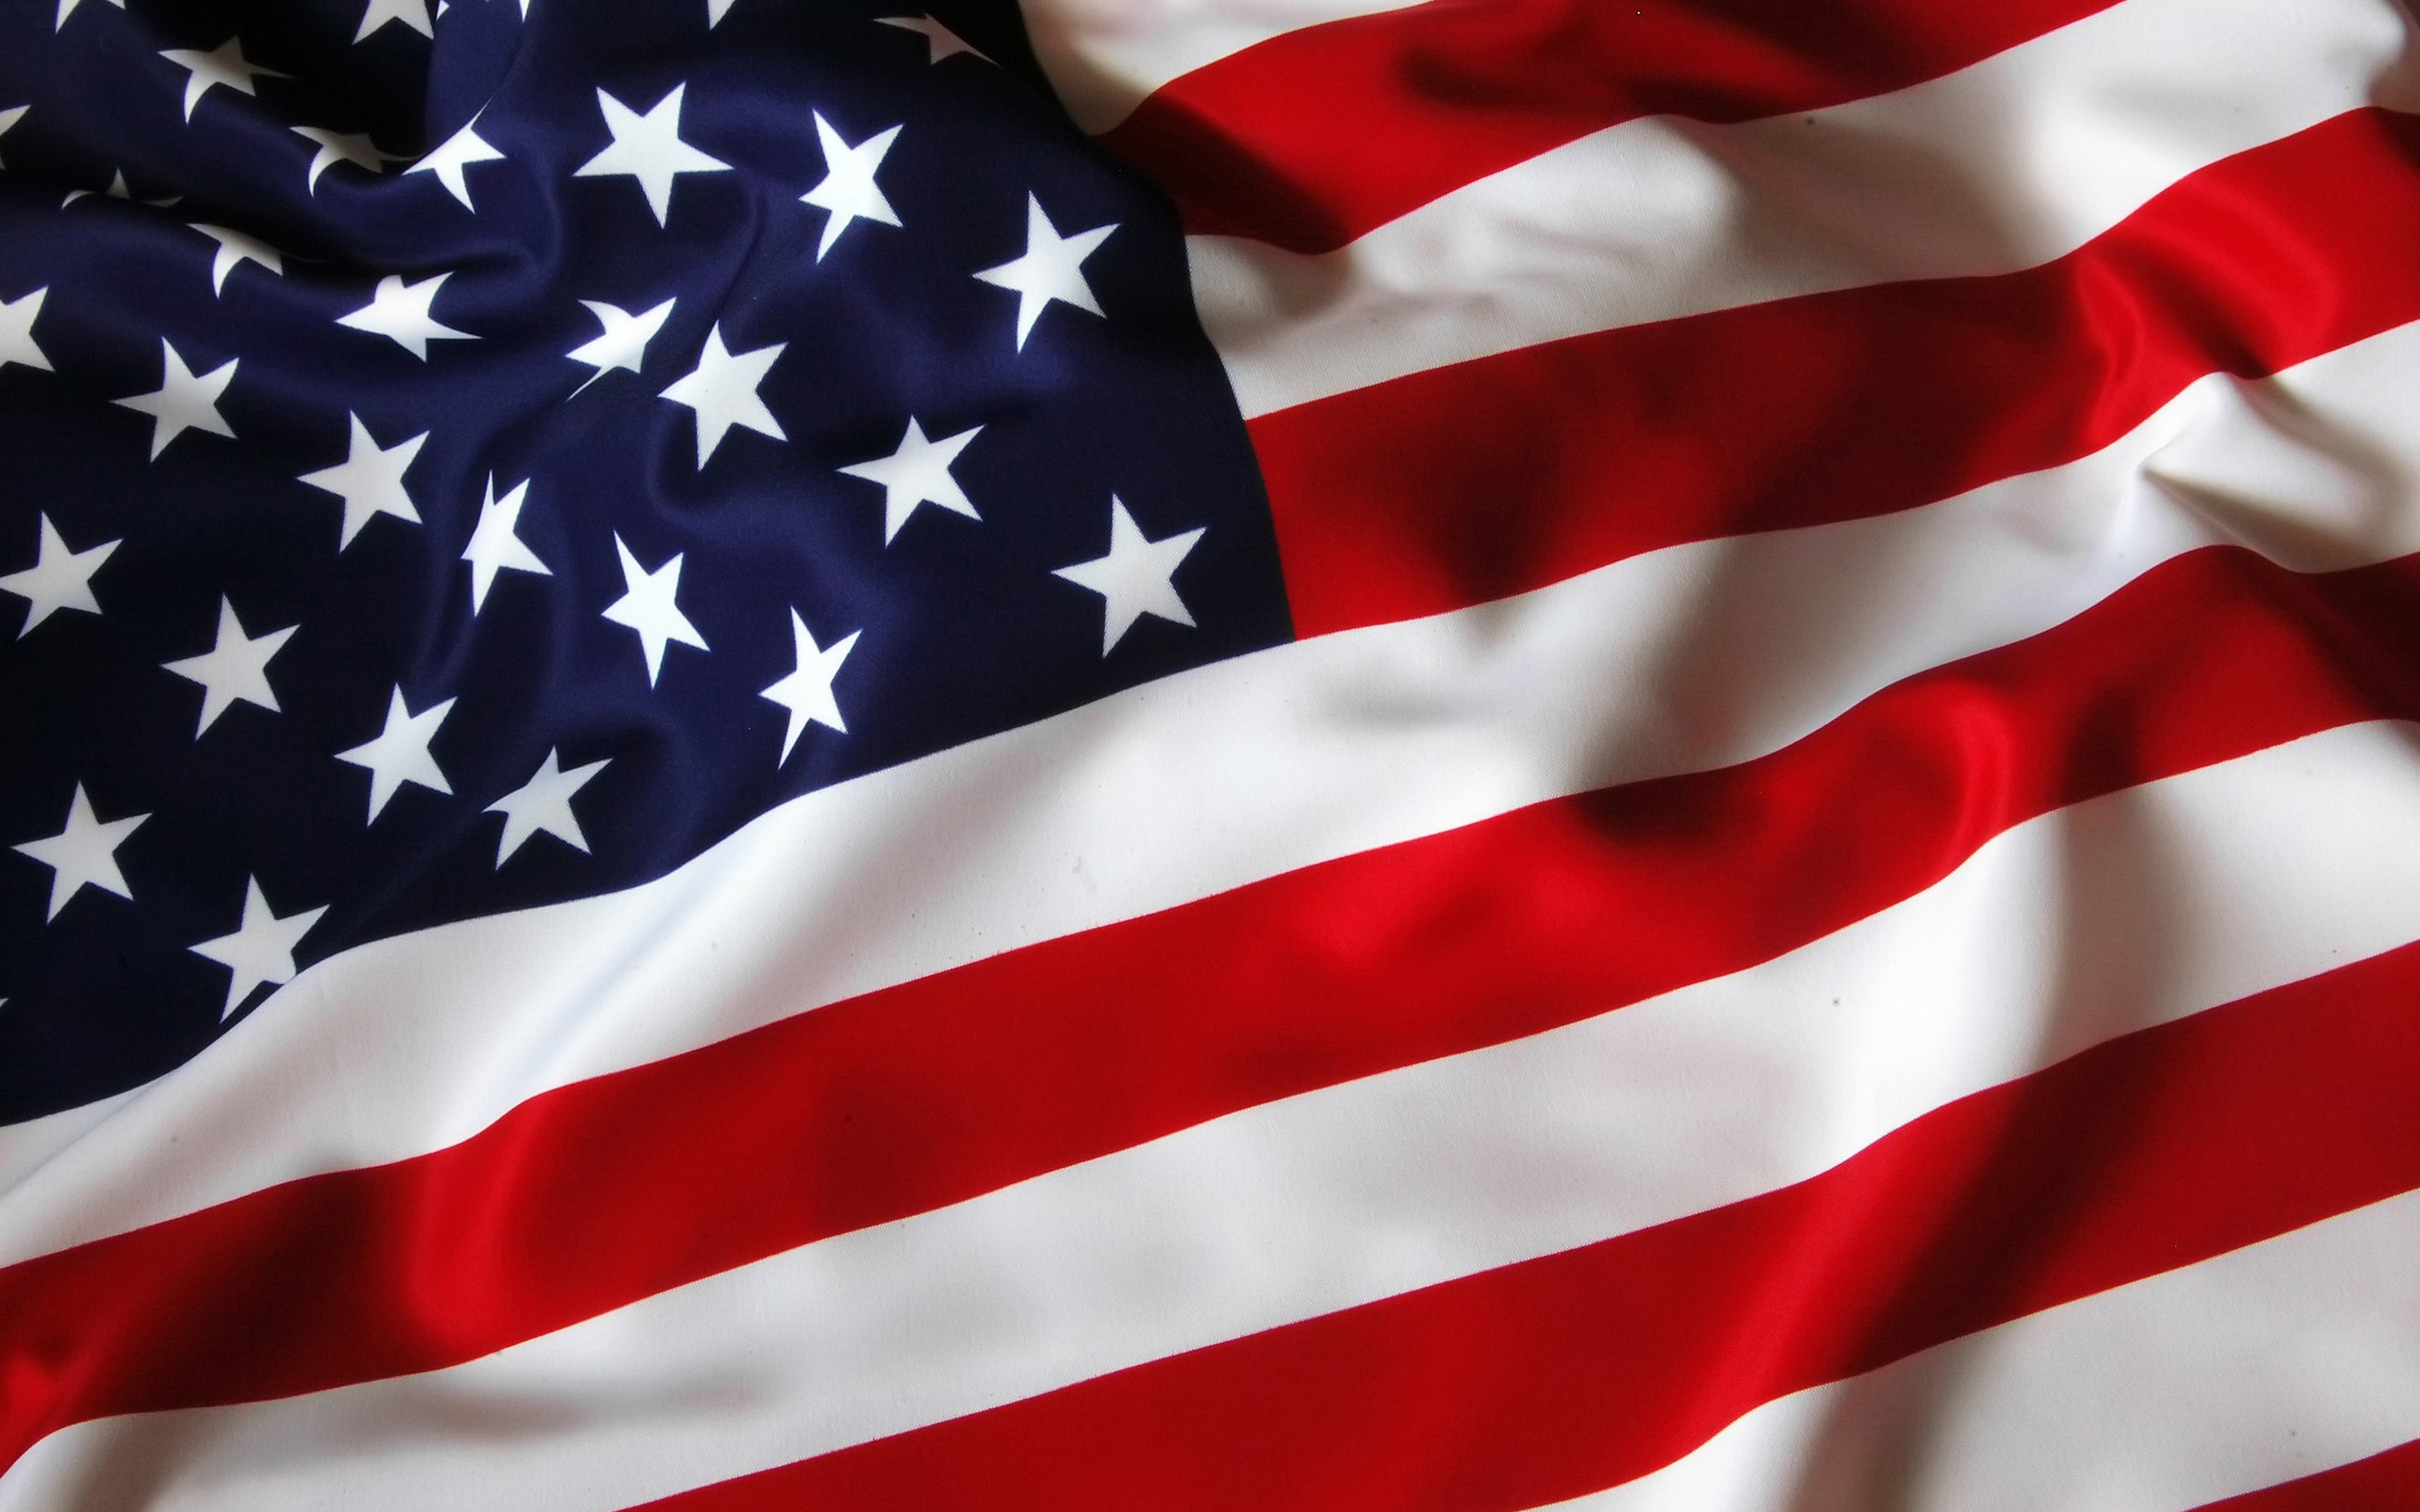 United States Flag Full HD Wallpapers Download Desktop 2560x1600